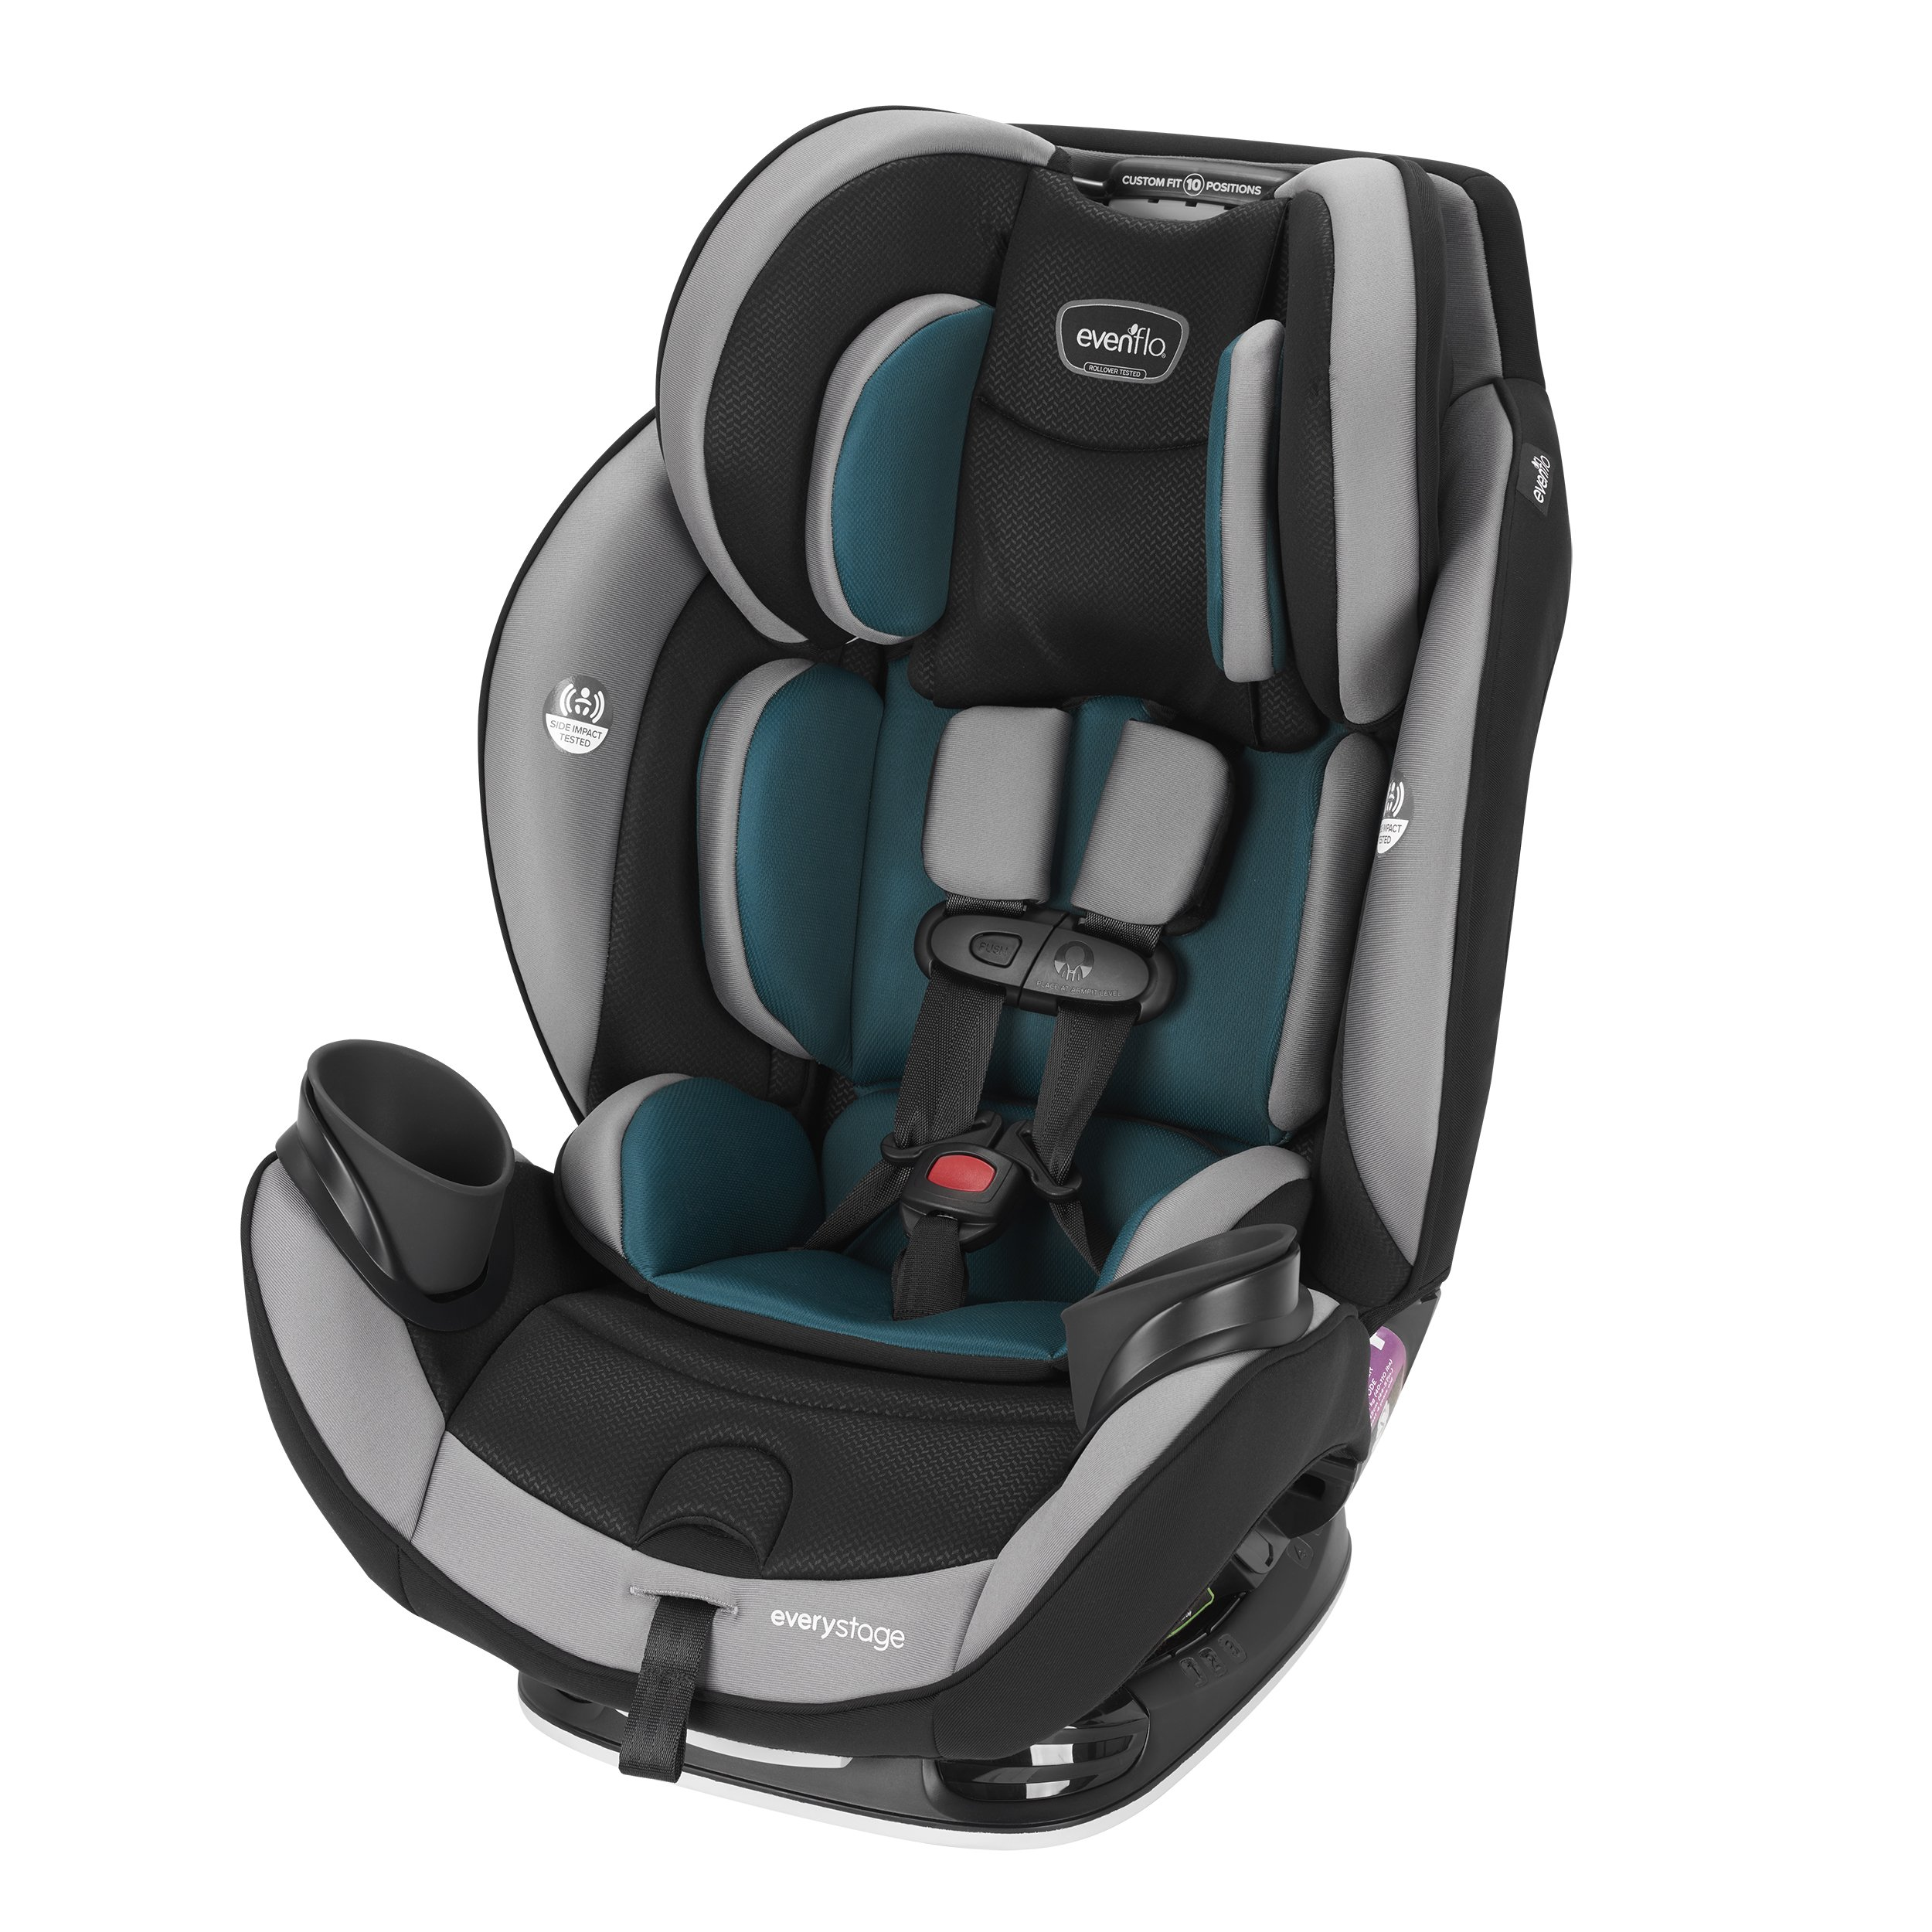 Amazon.com : Evenflo EveryStage DLX All-in-One Car Seat